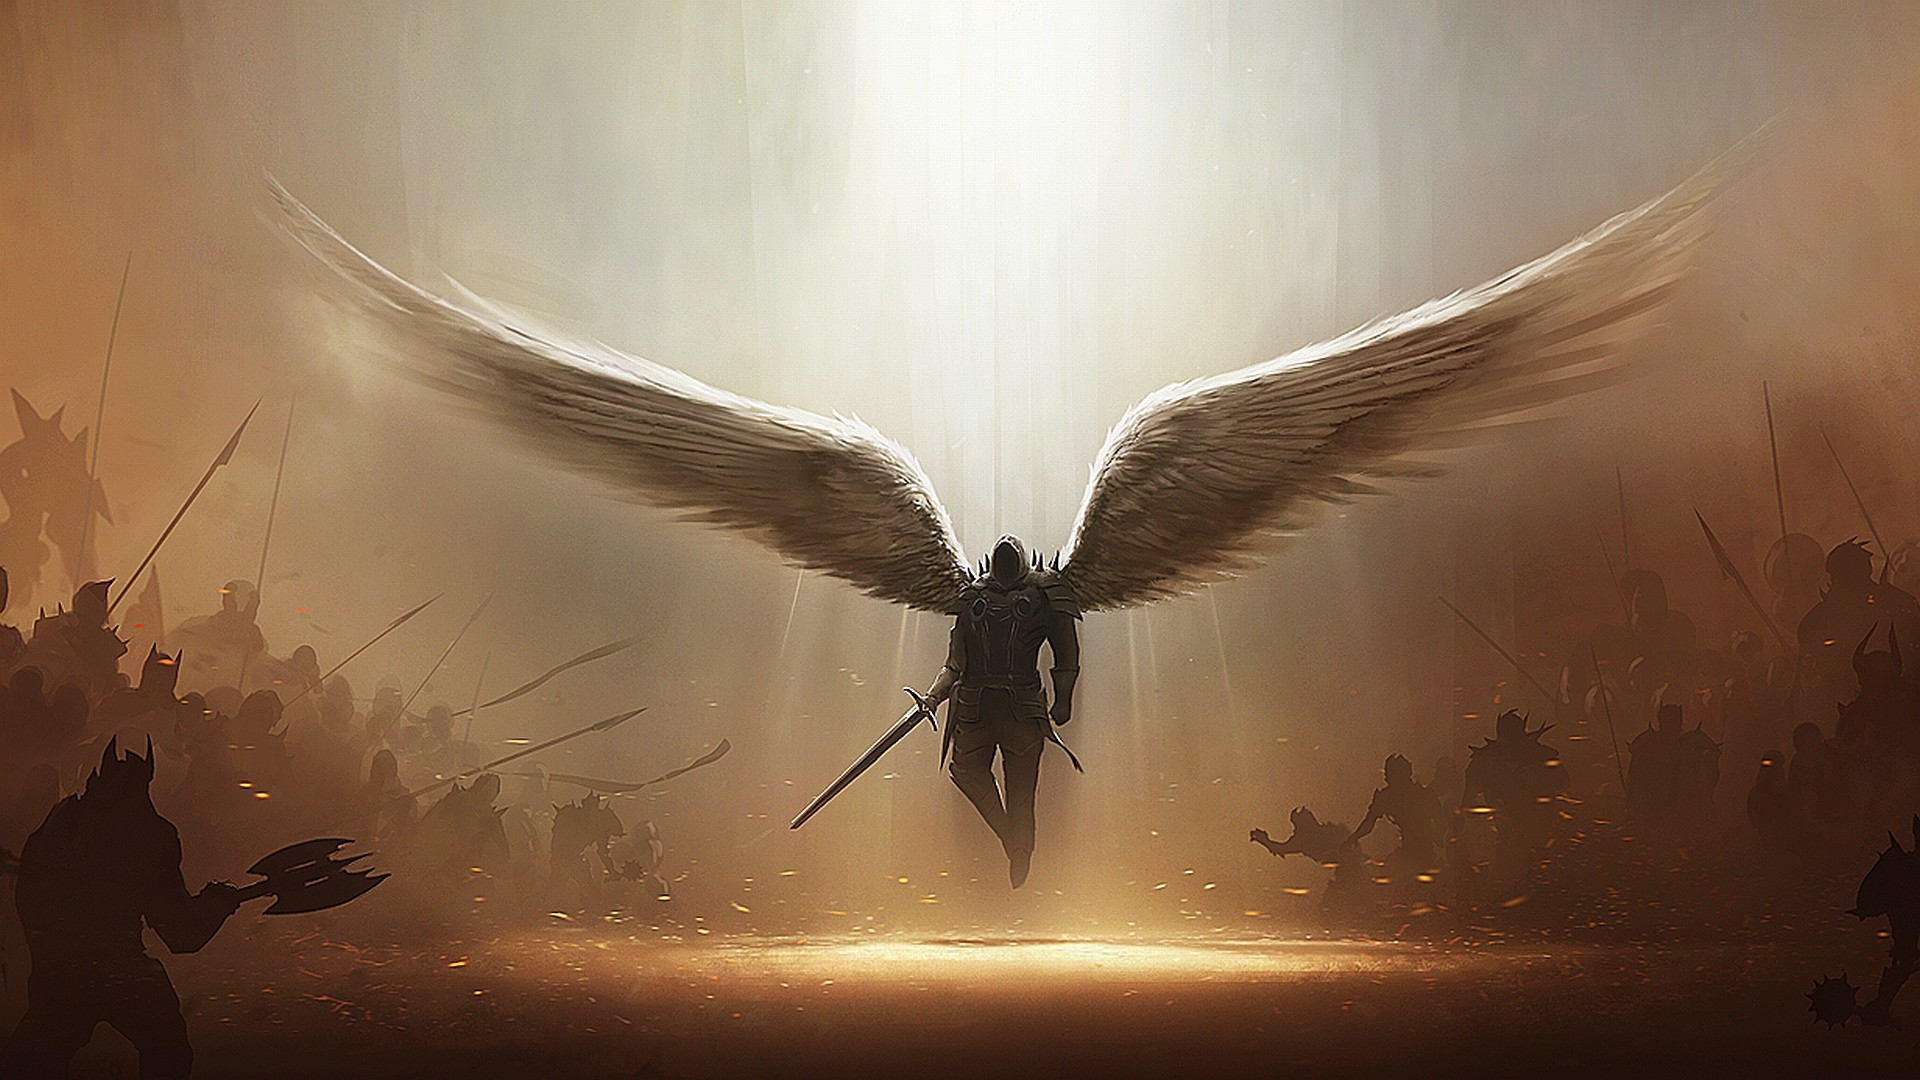 angels wings war original HD Wallpaper angels wings war original 1920x1080